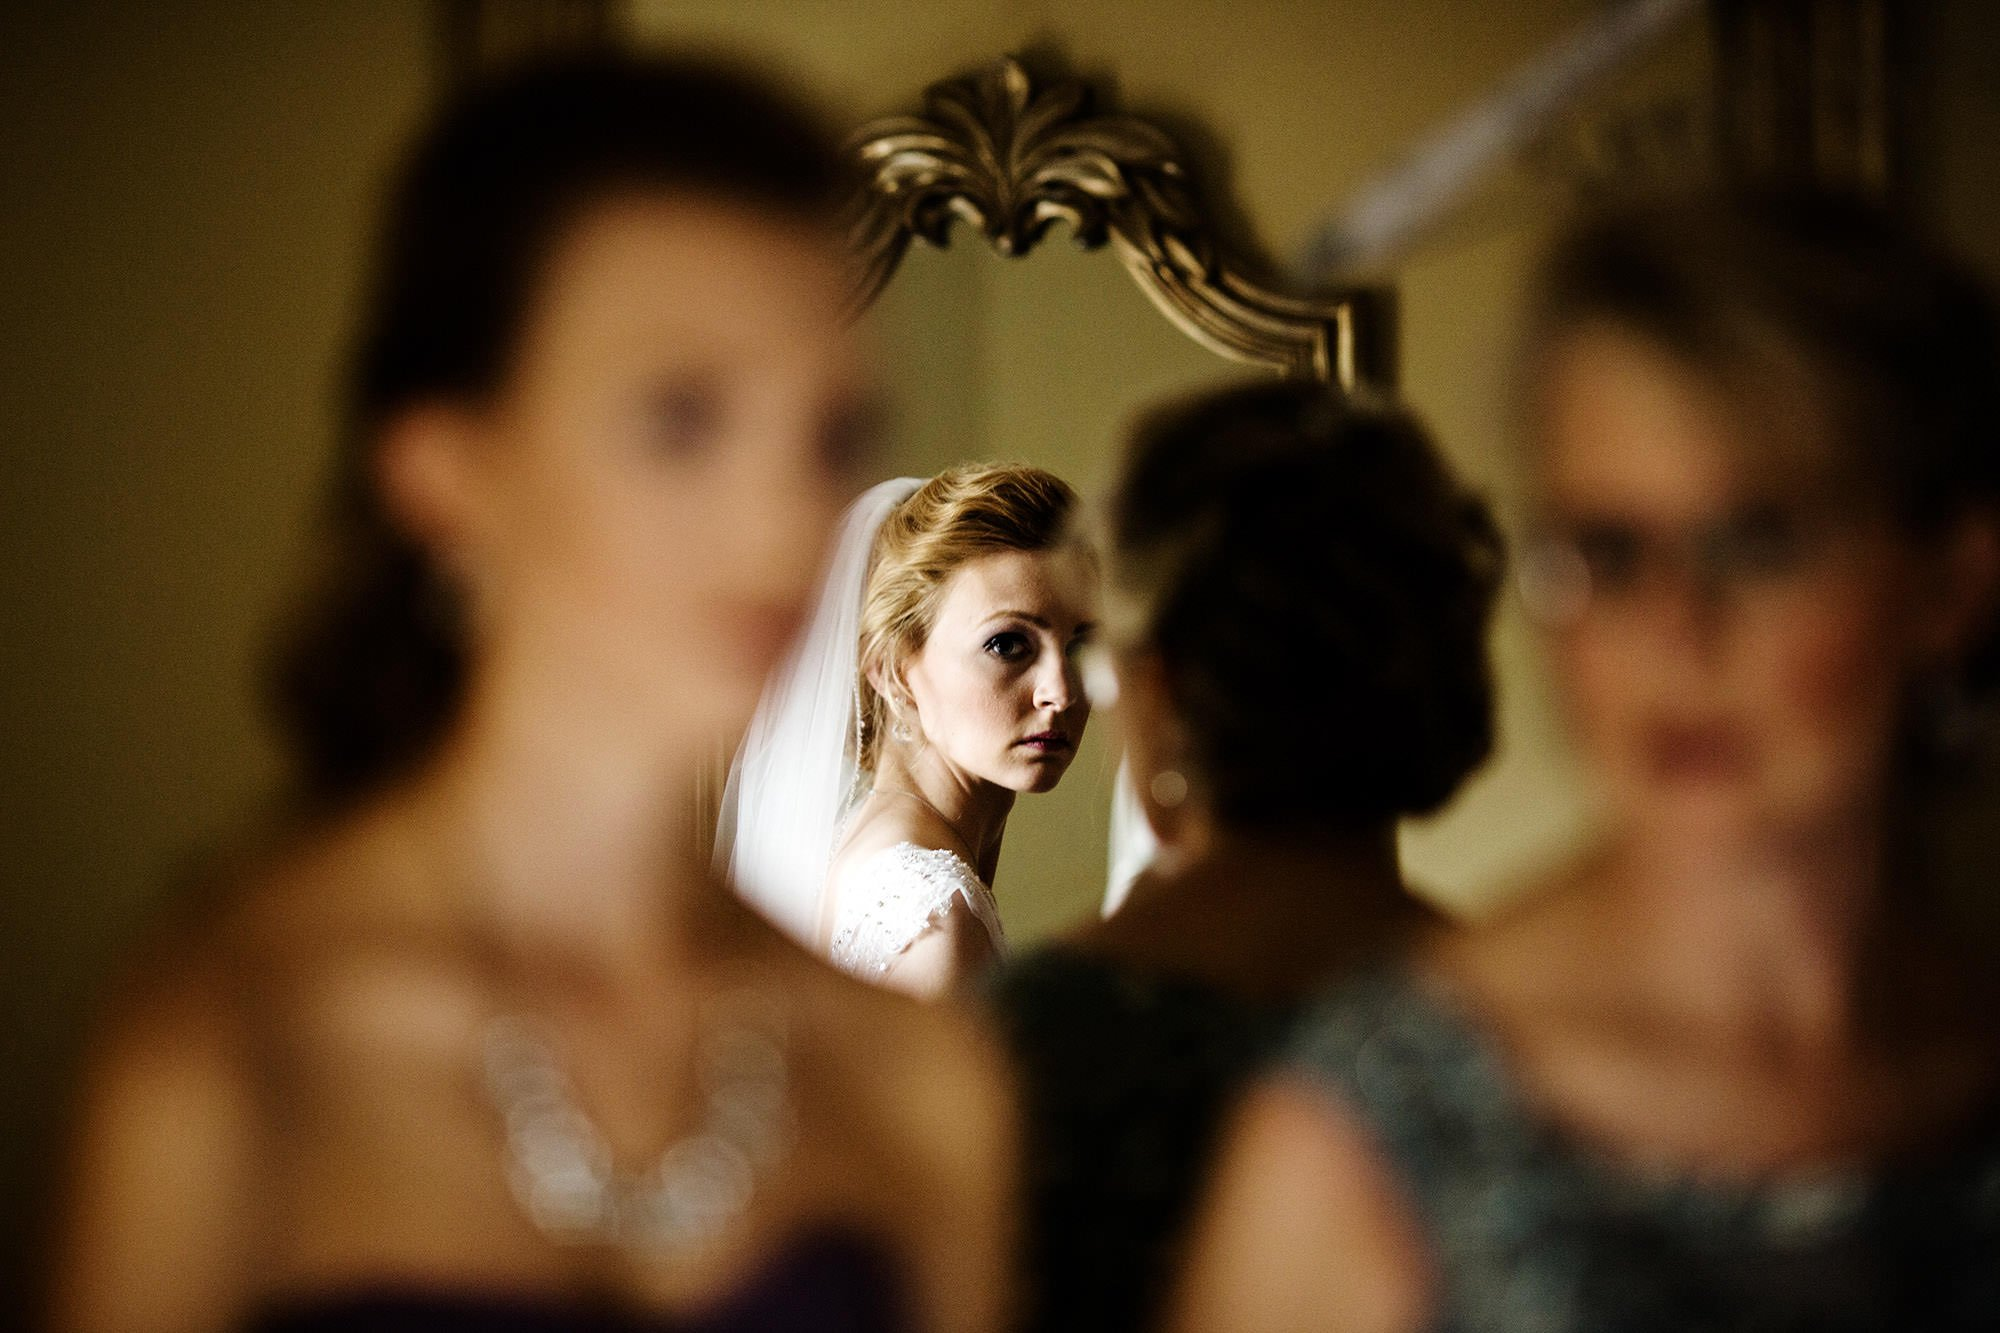 The bride looks in the mirror prior to the ceremony.